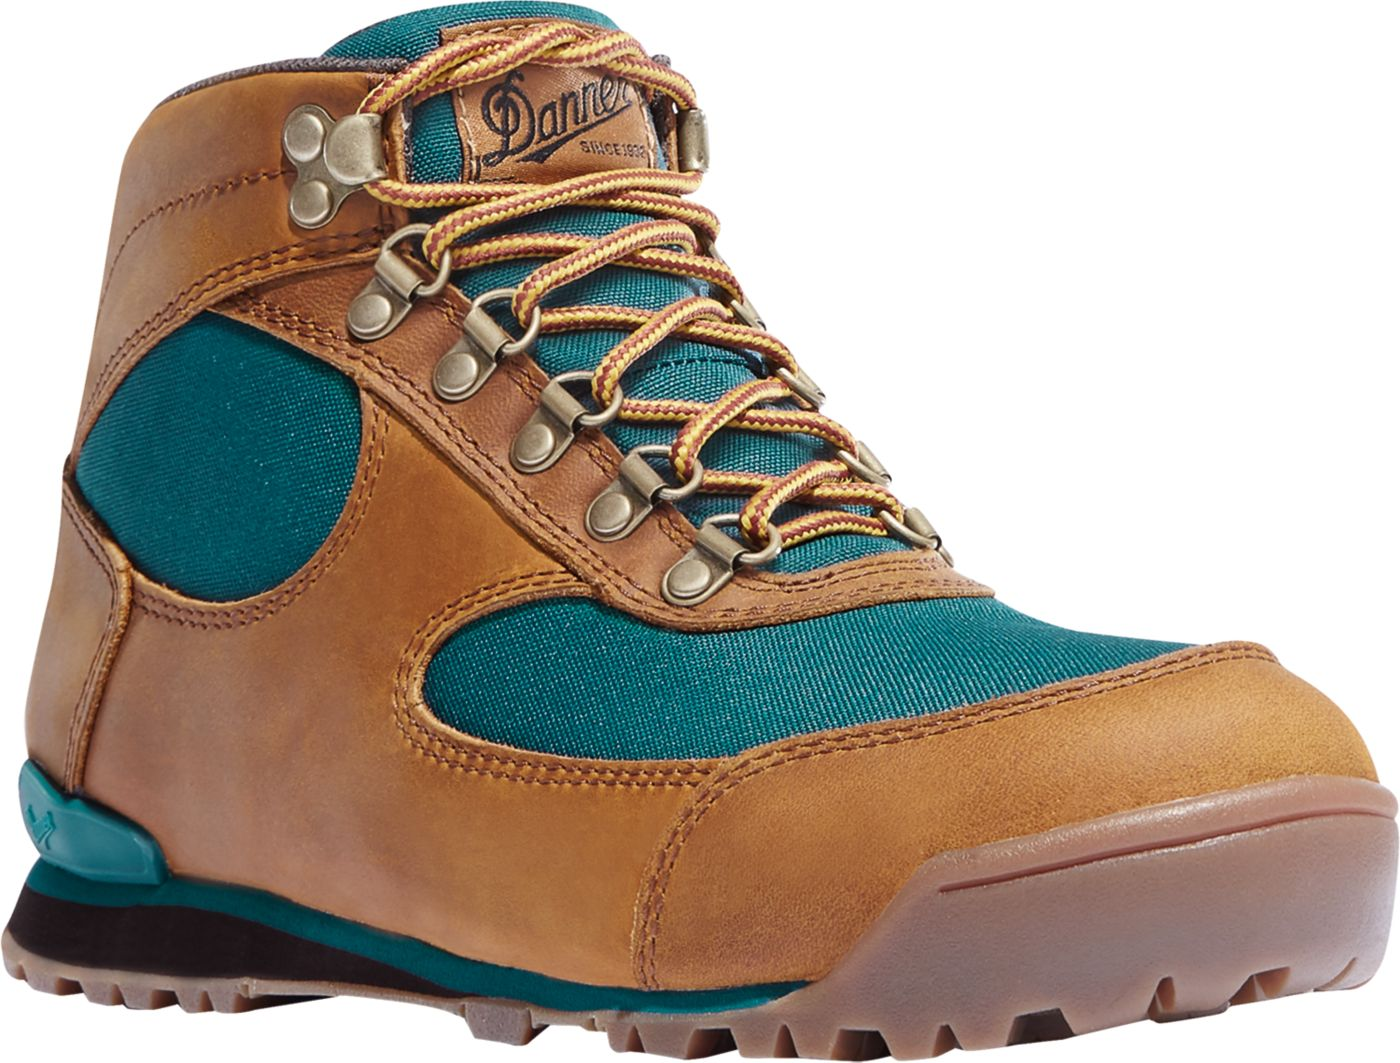 Danner Women's Jag Leather Hiking Boots